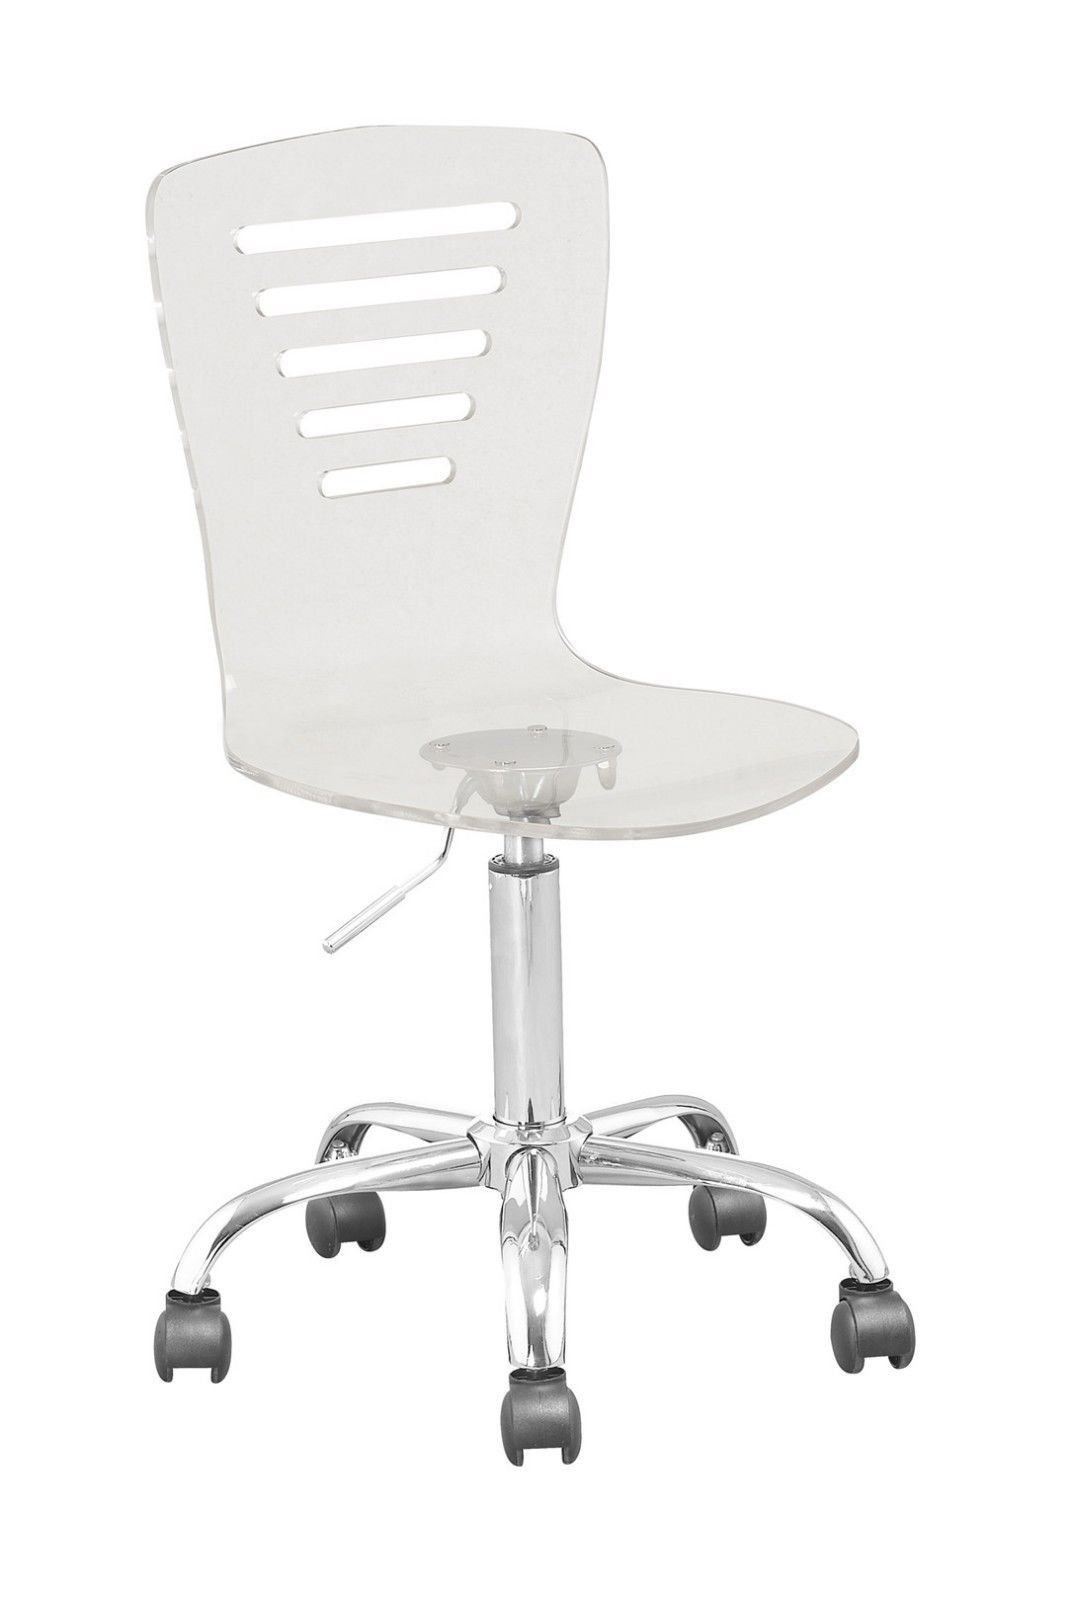 Retro Acrylic Hydraulic Lift Adjustable Height Swivel Office Desk Chair Clear (7012) Made By jersey seating®